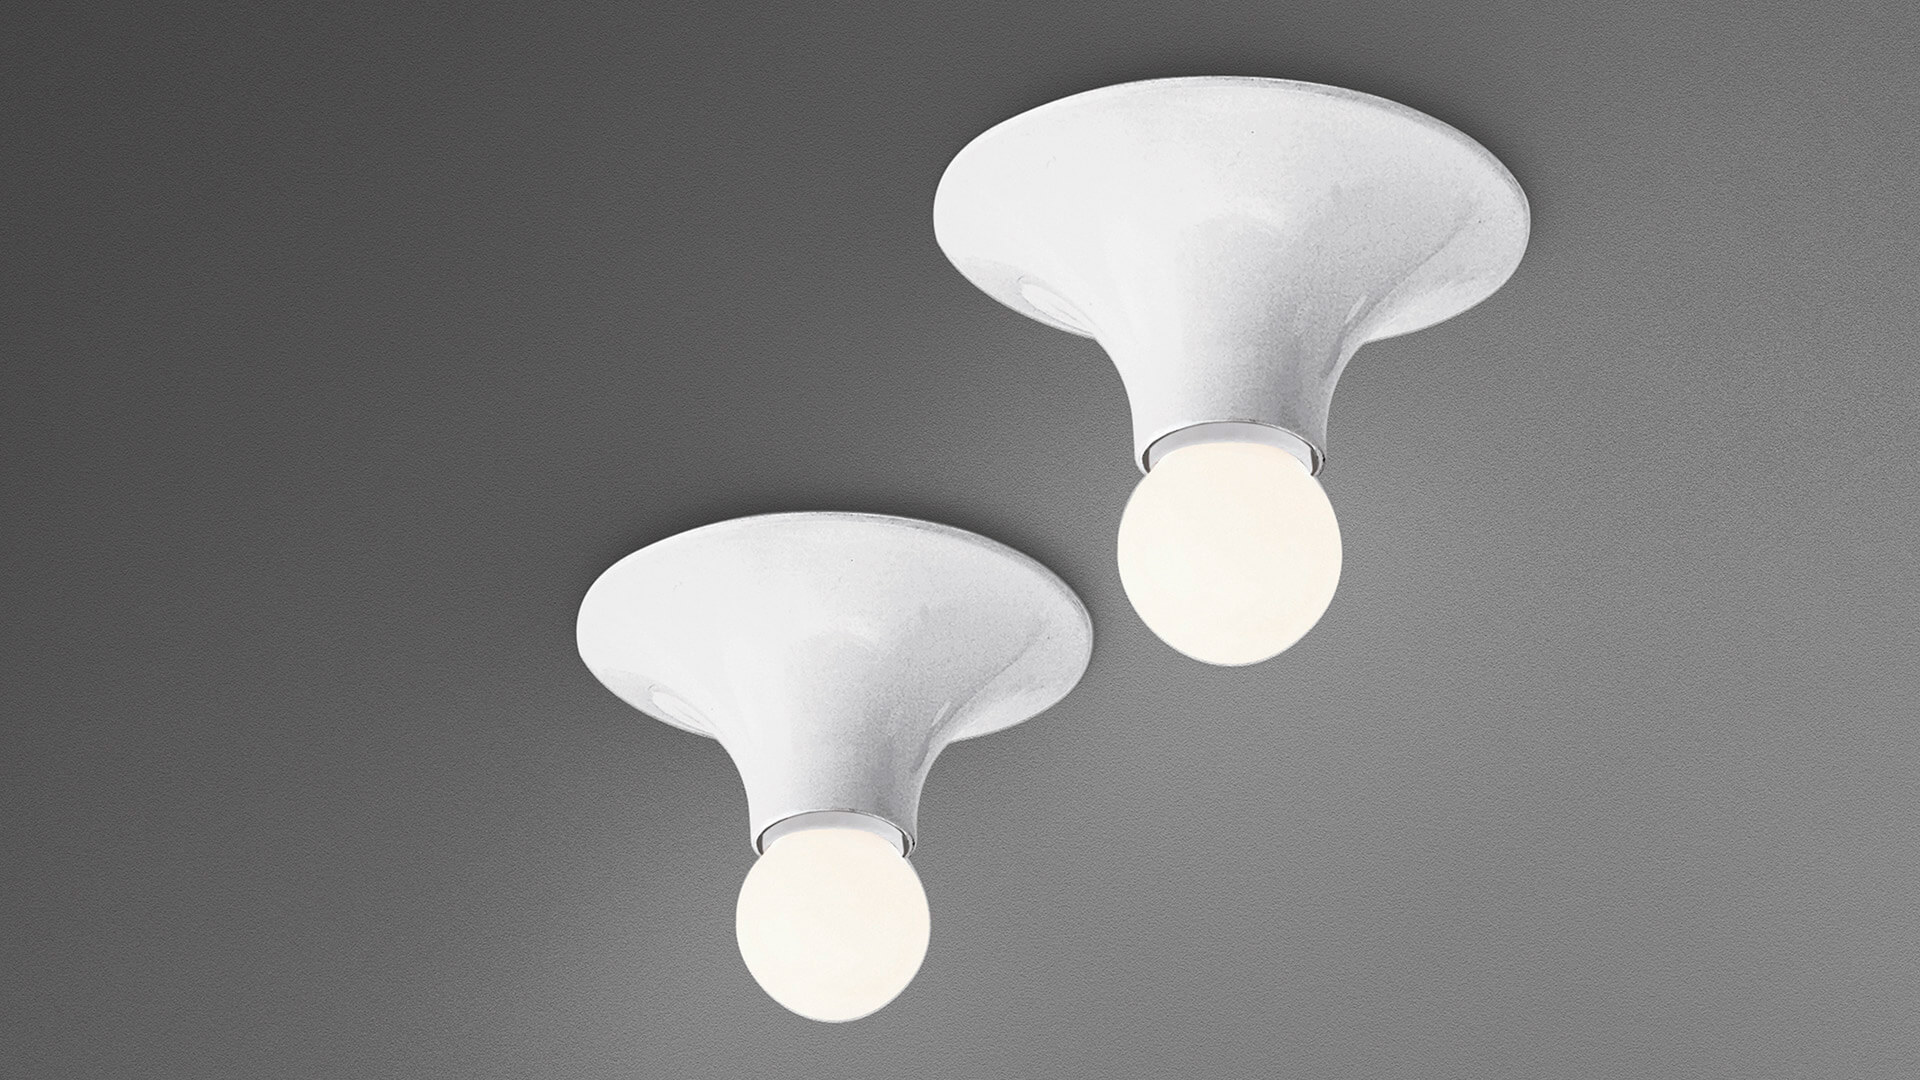 More information of Artemide TETI wall/ceiling lamp